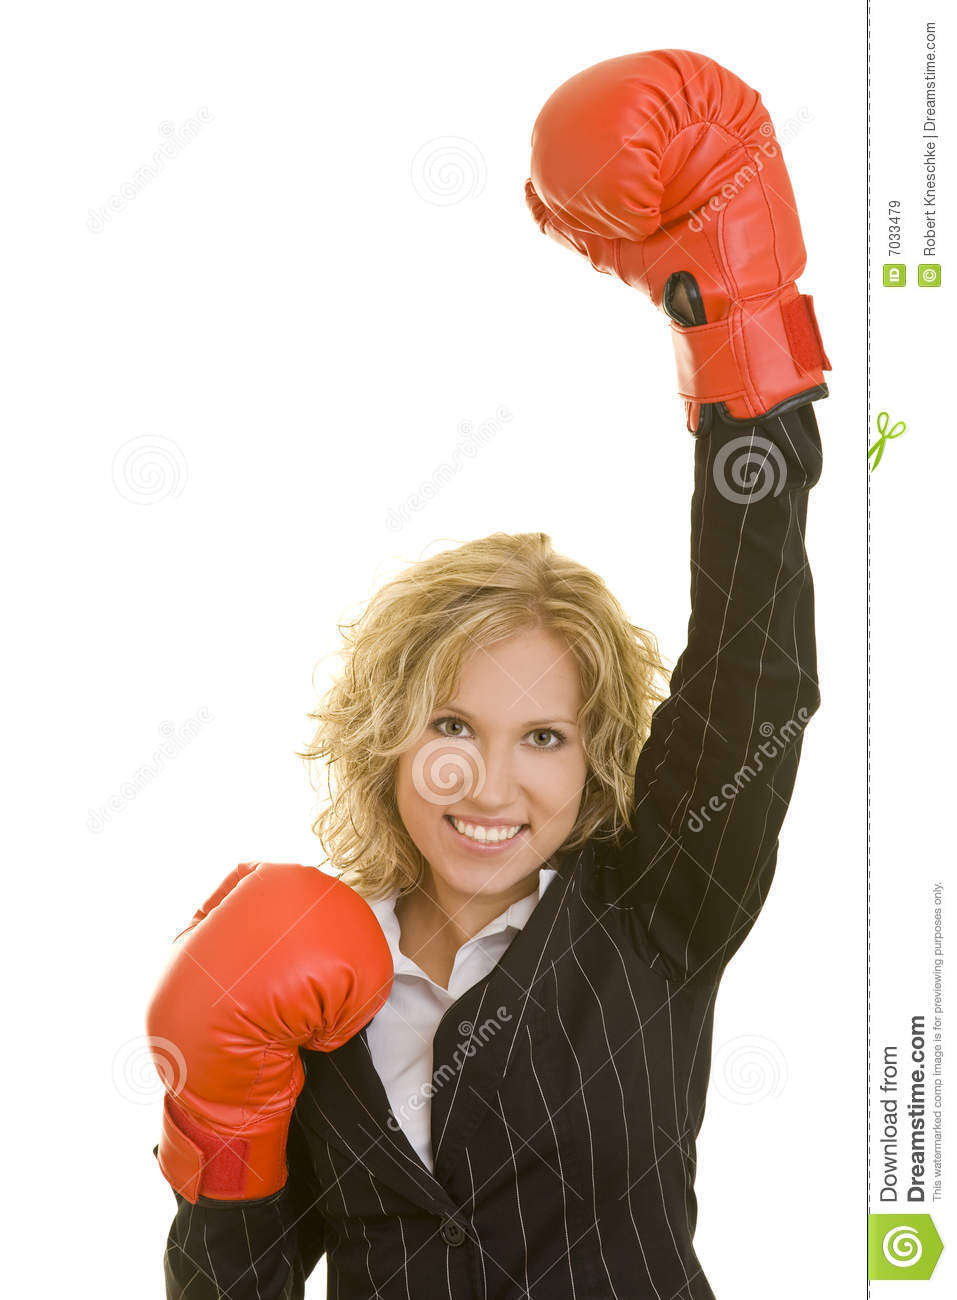 Joy with boxing gloves